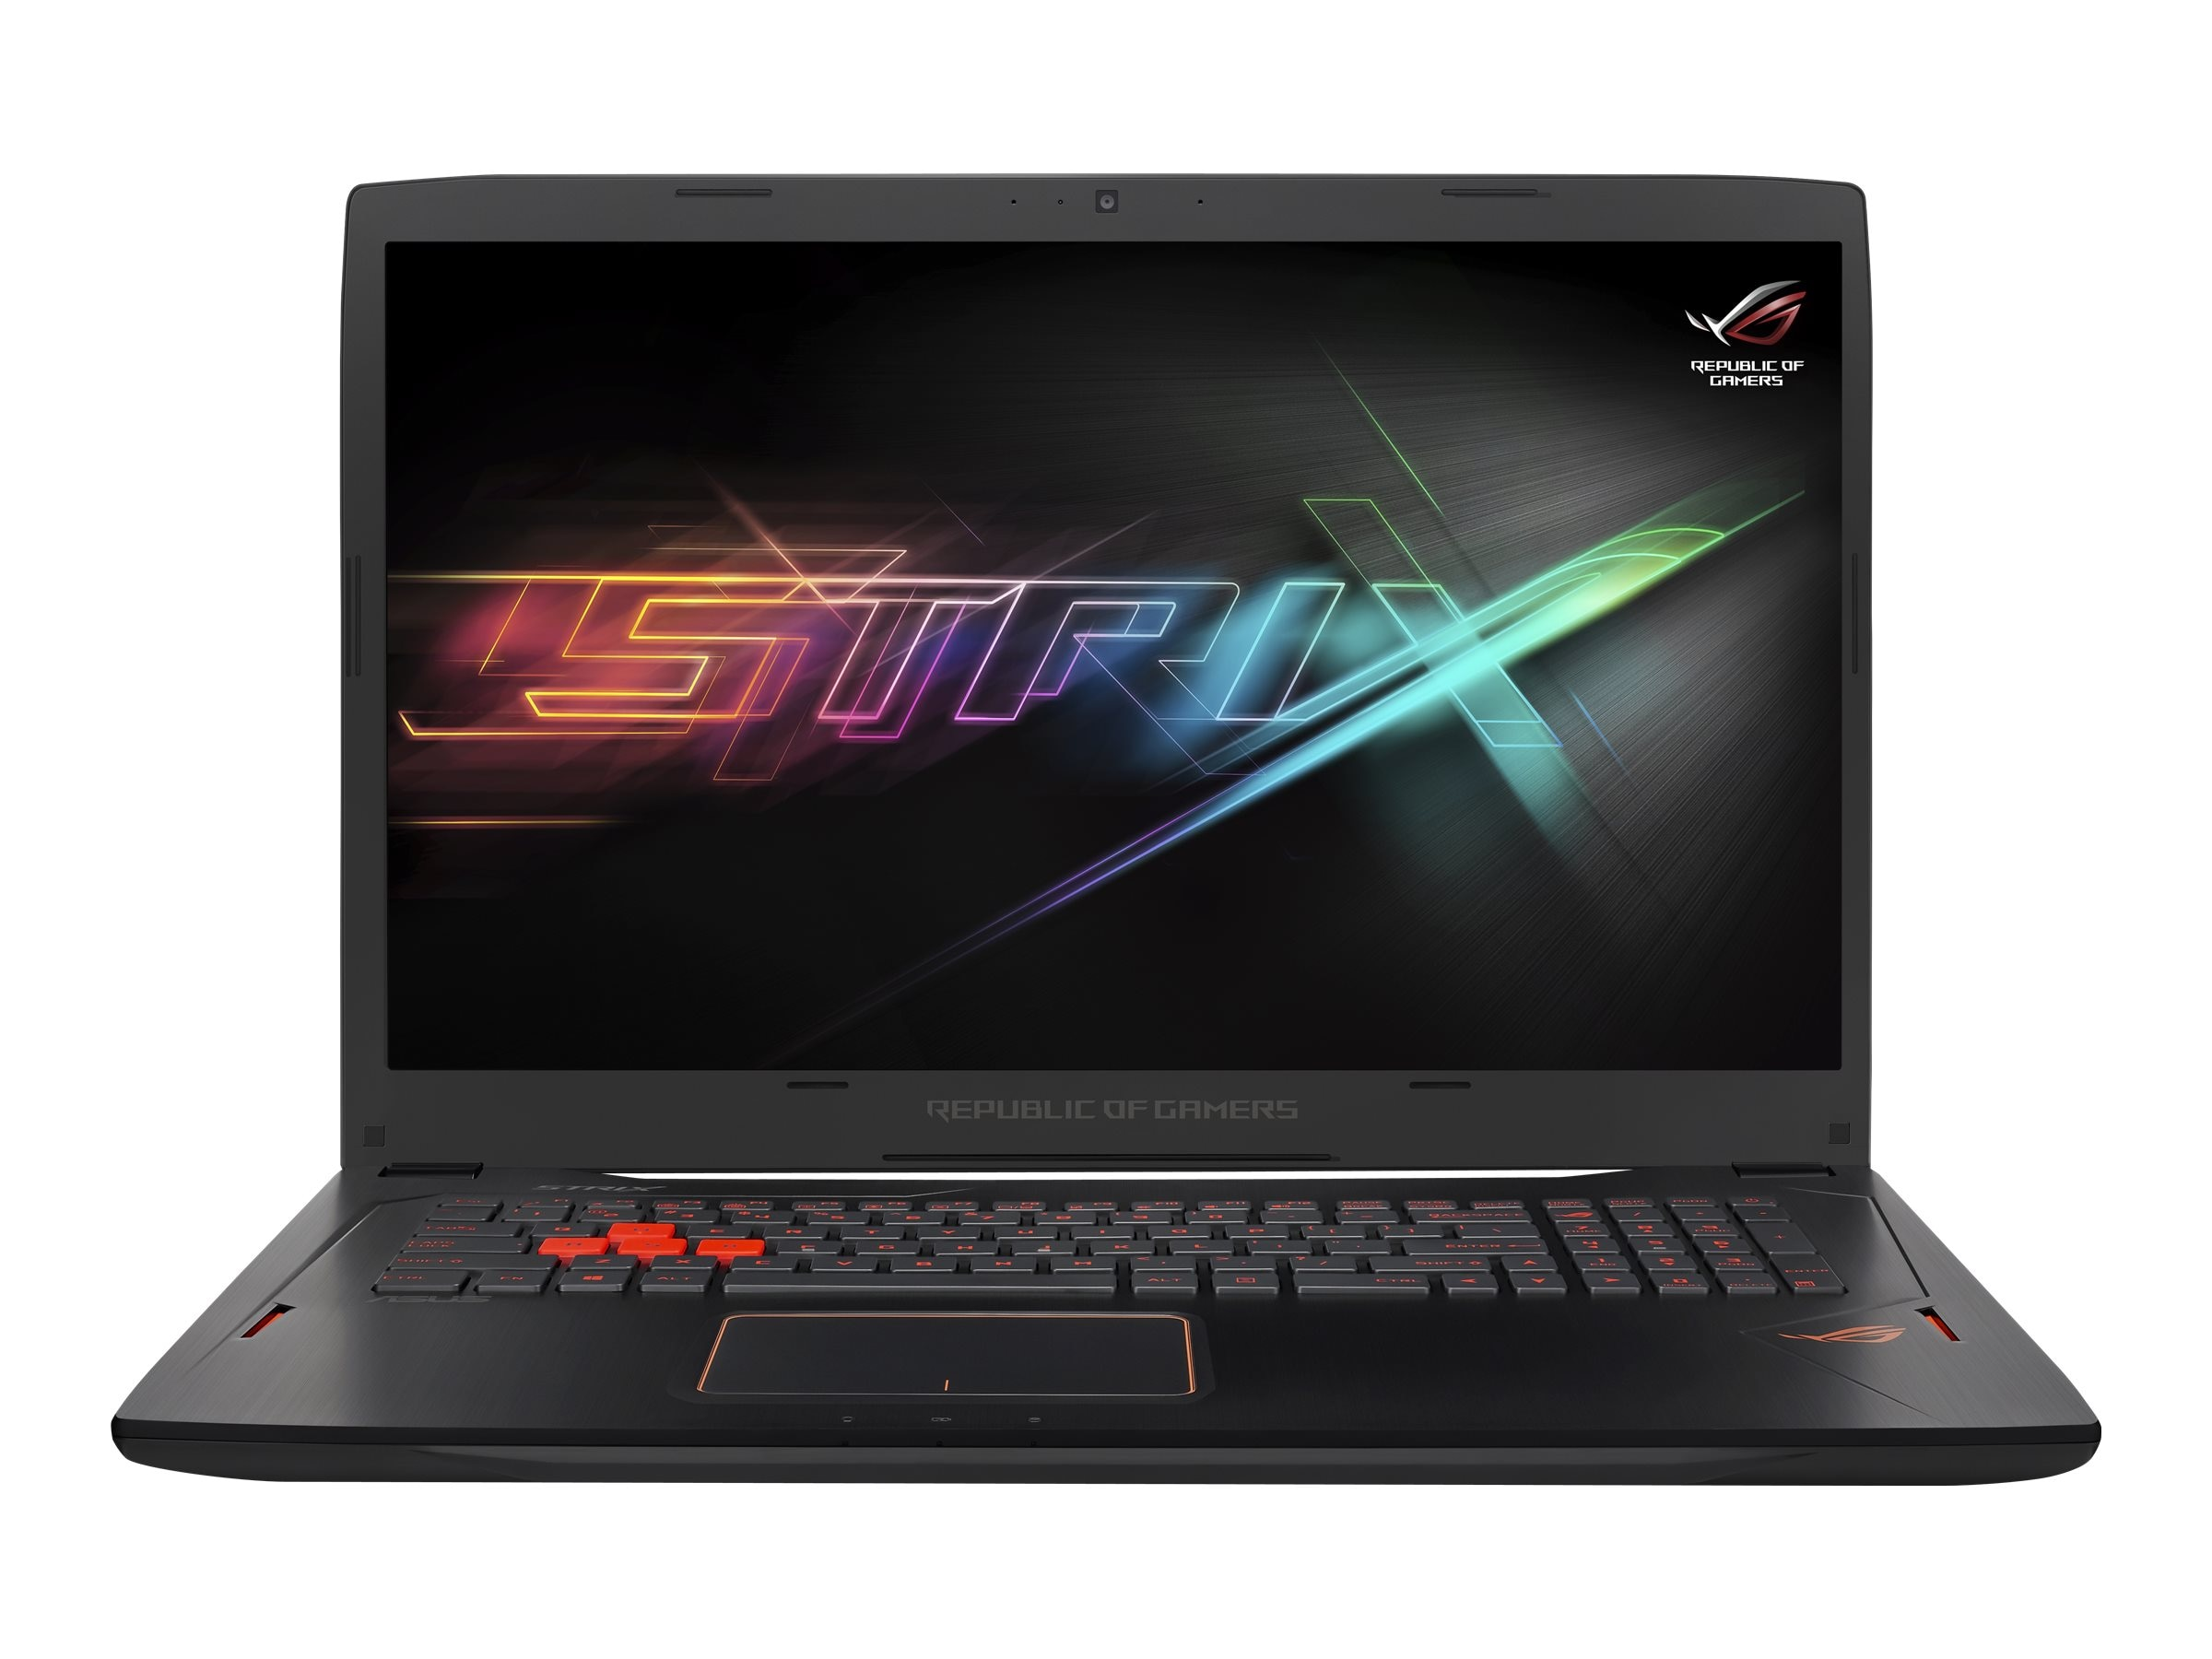 Asus GL702VM-DB74 Core i7-6700HQ 2.6GHz 16GB 256GB 17.3 W10, GL702VM-DB74